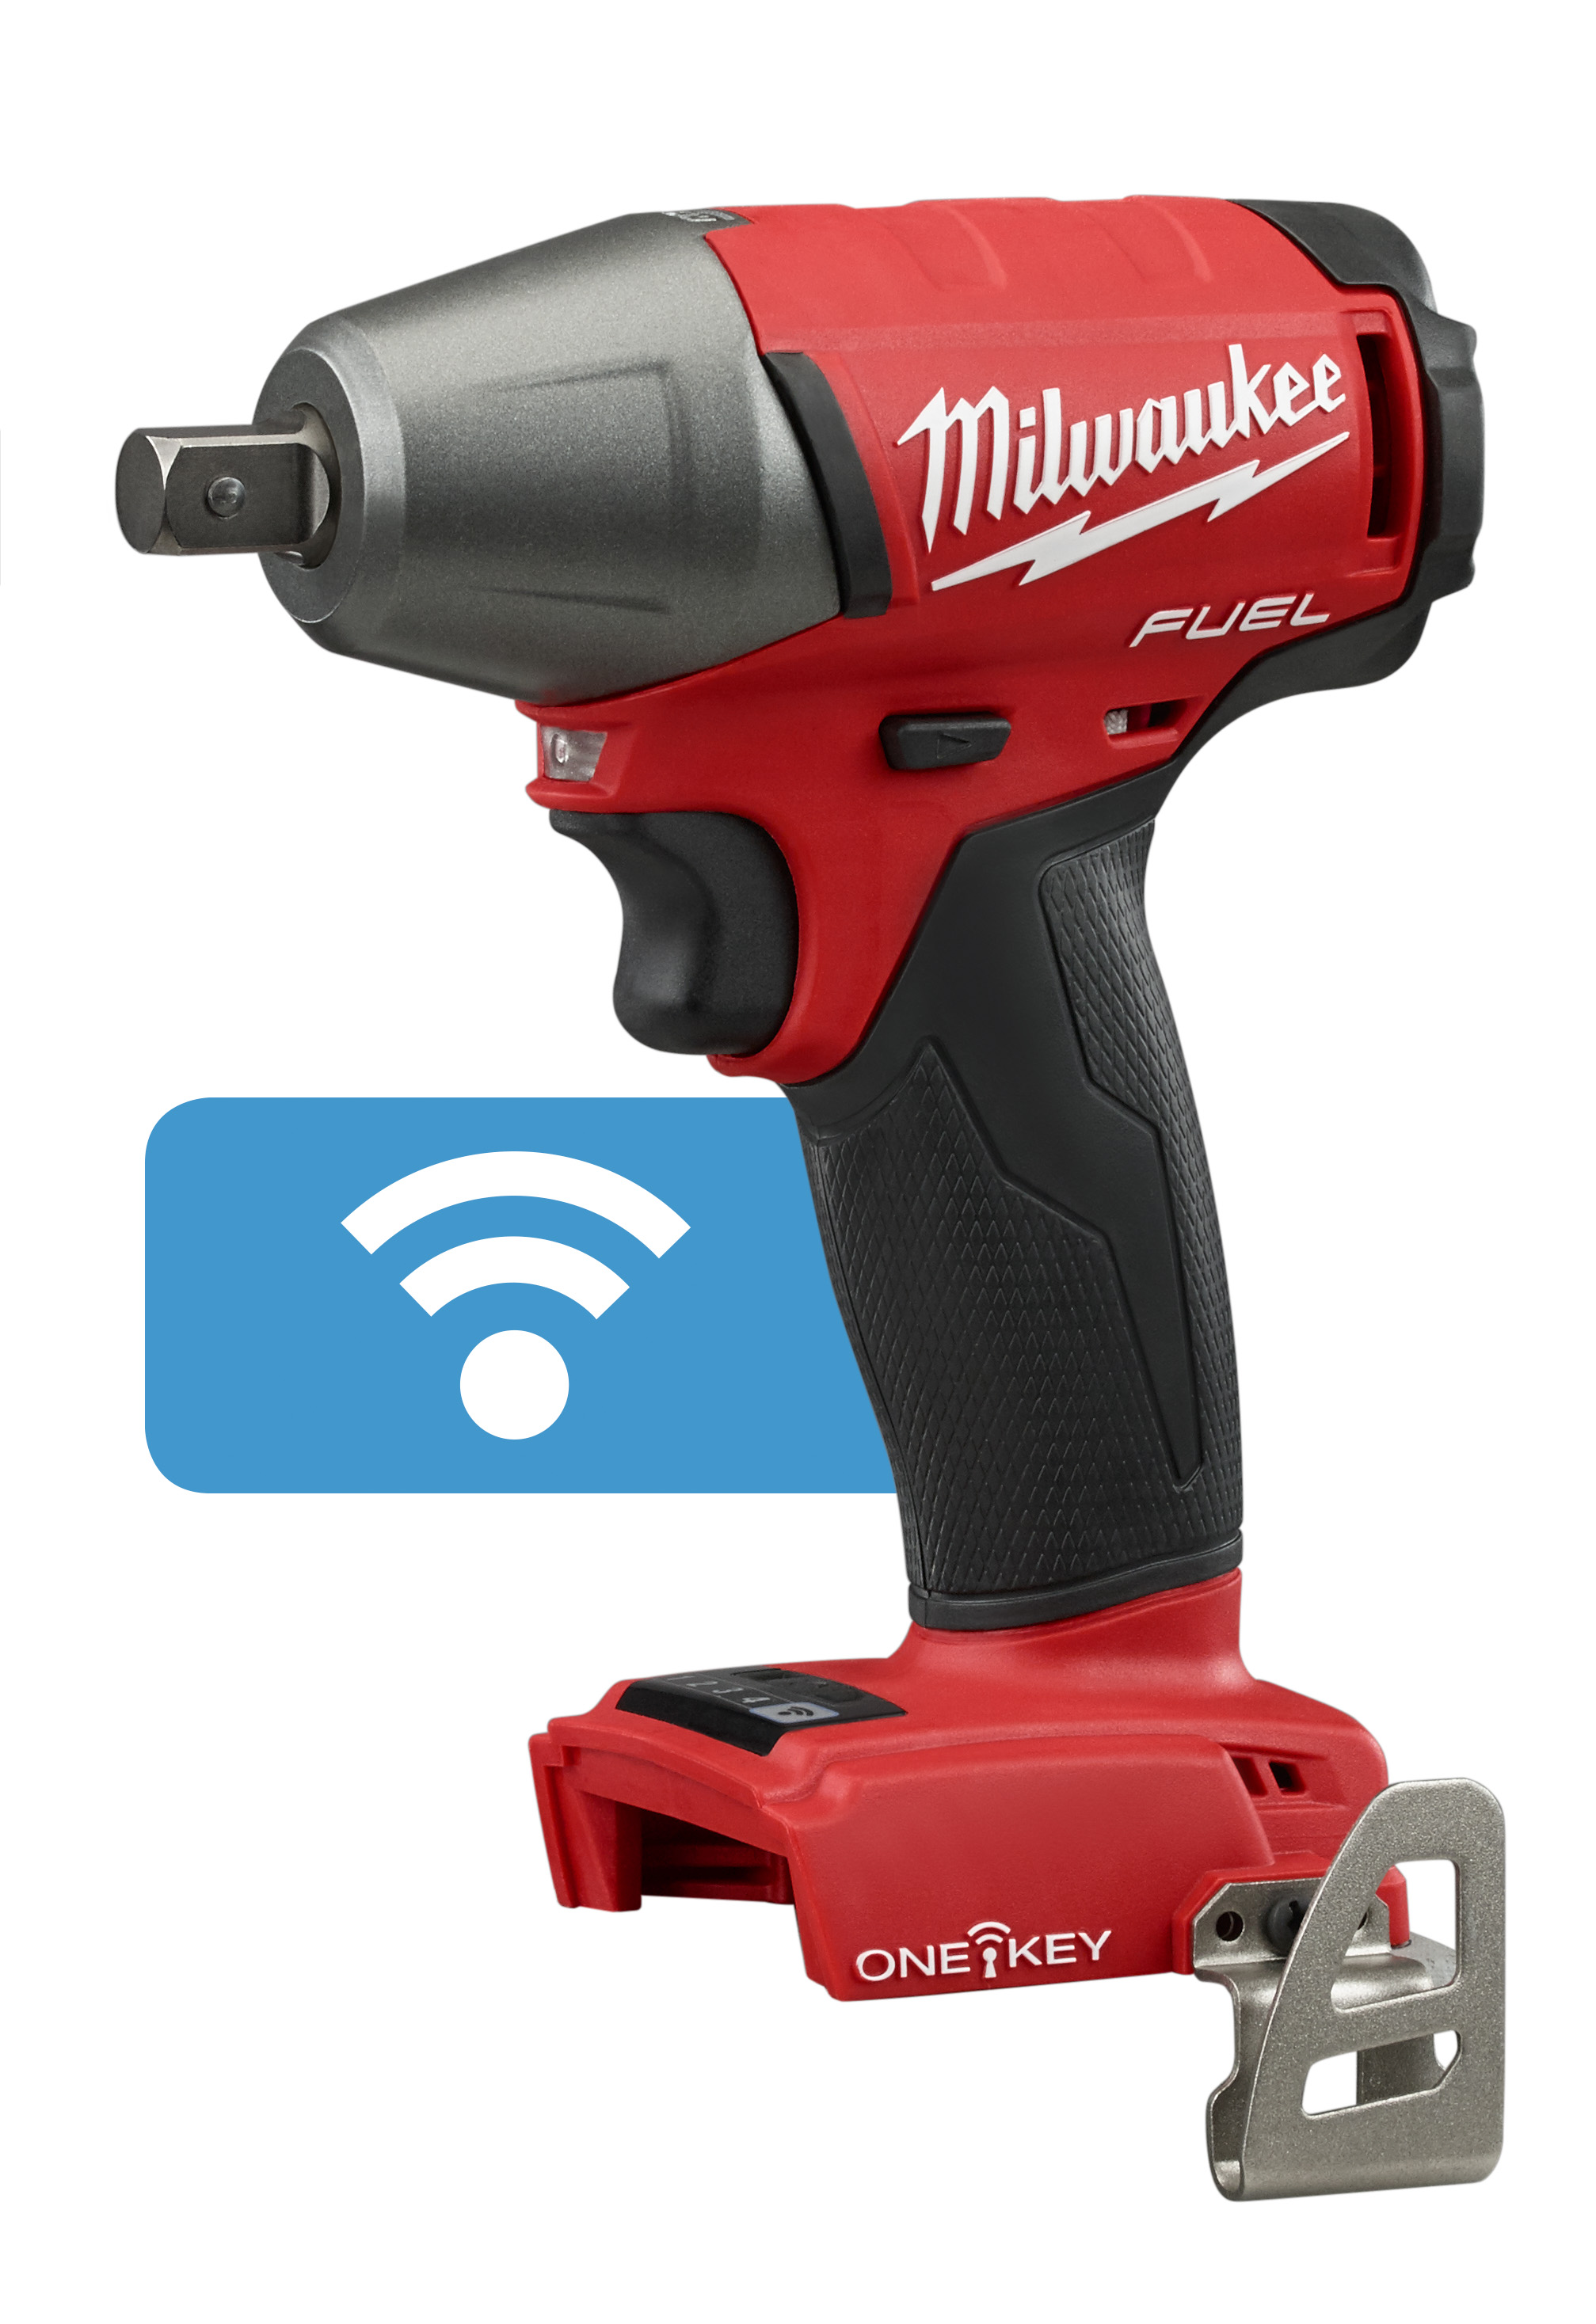 Milwaukee® M18™ FUEL™ 2759-20 Compact Cordless Impact Wrench With Pin Detent, 1/2 in Straight Drive, 0 to 3200 bpm, 220 ft-lb Torque, 18 VDC, 6-1/8 in OAL